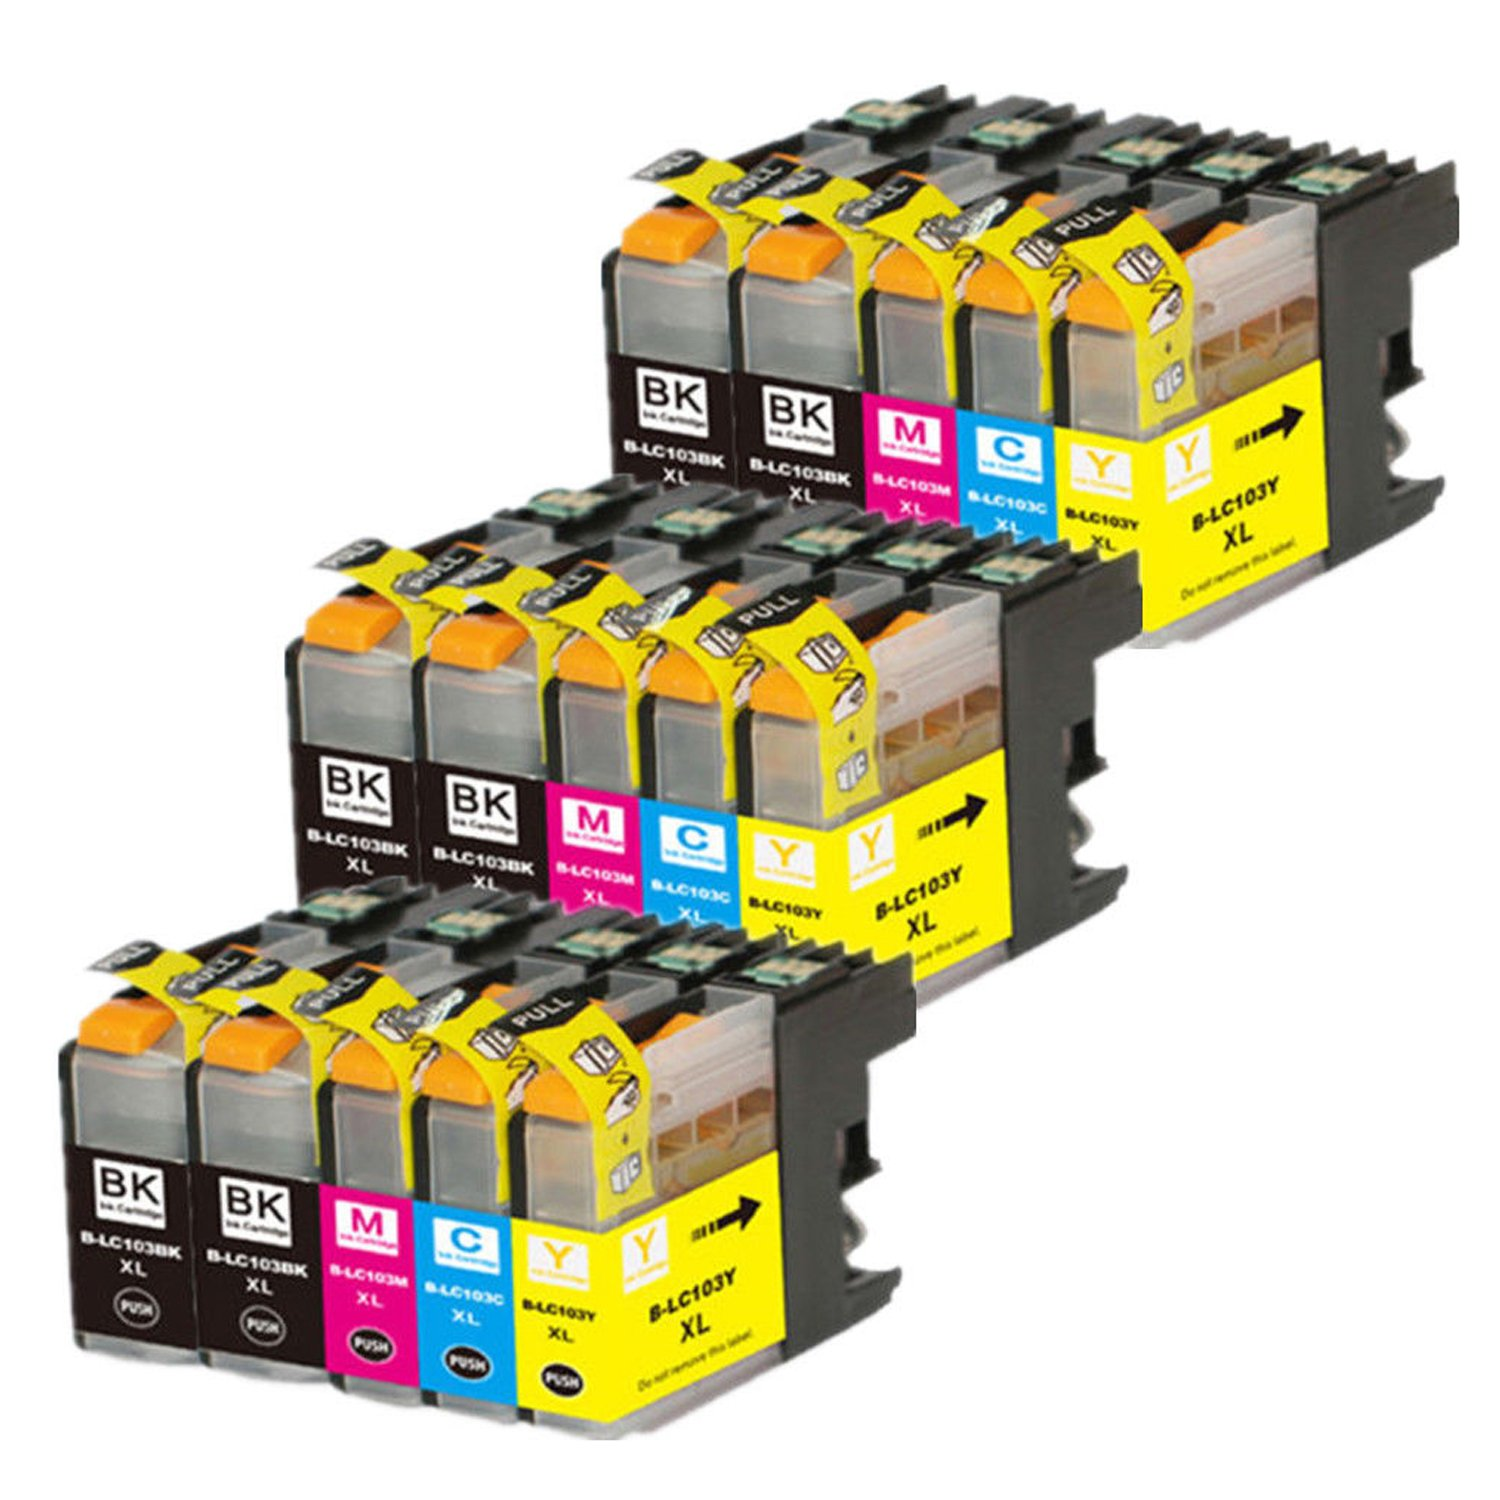 ZR-Printing Replacement Brother LC103 103xl Ink Cartridge Compatible Brother DCP-J152W,MFC-J245/J285DW,MFC-J450DW,MFC-J650DW/J870DW,MFC-J4310DW,MFC-J6520D(6 Black, 3 Cyan, 3 Magenta, 3 Yellow)